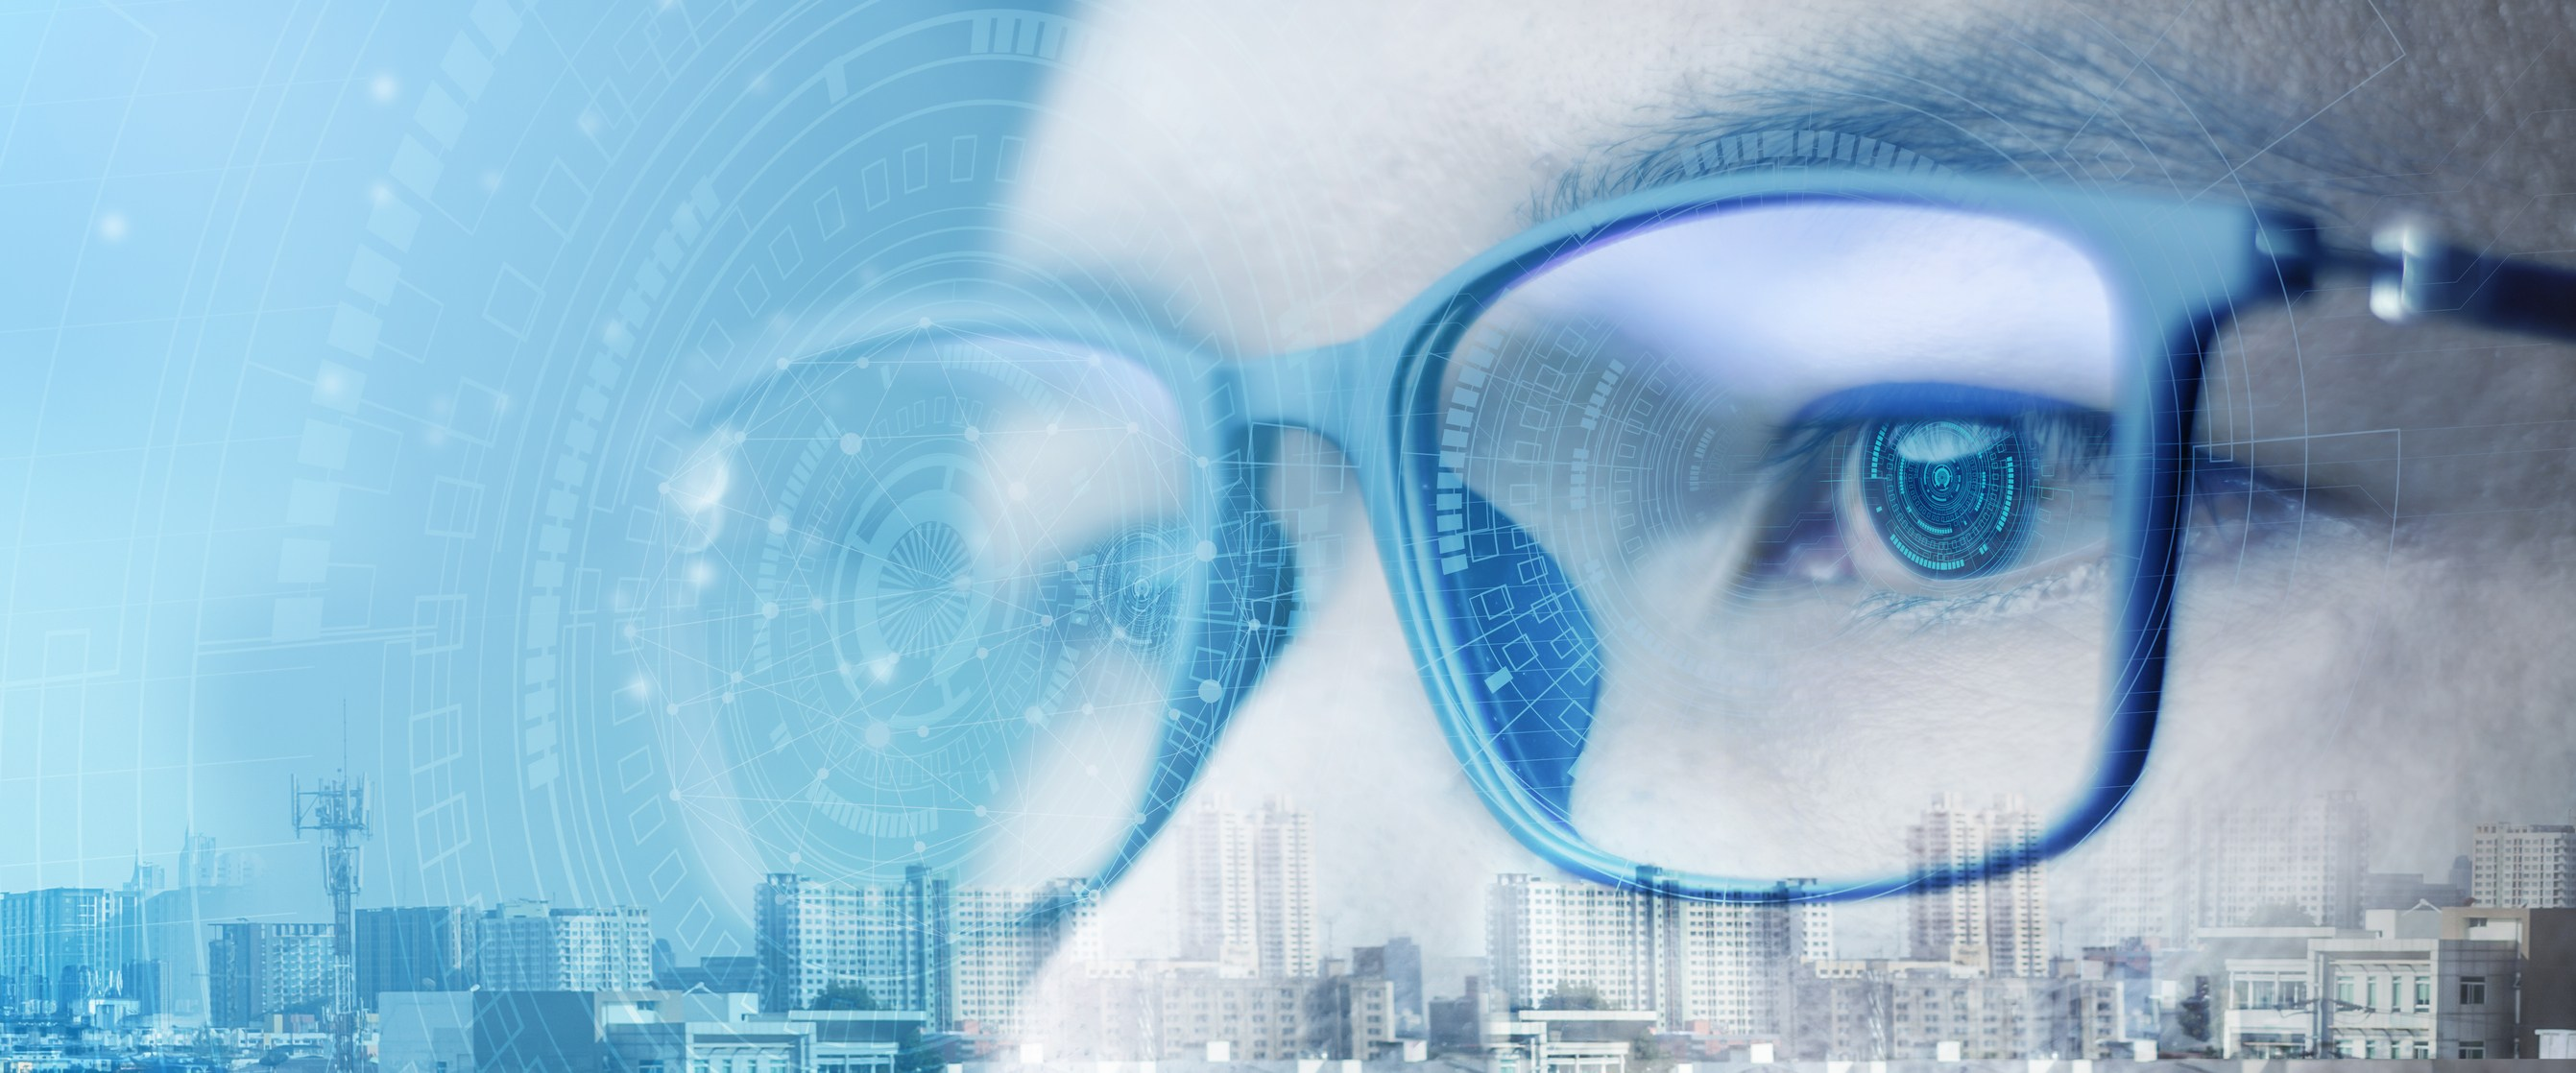 Looking at the future with clear vision